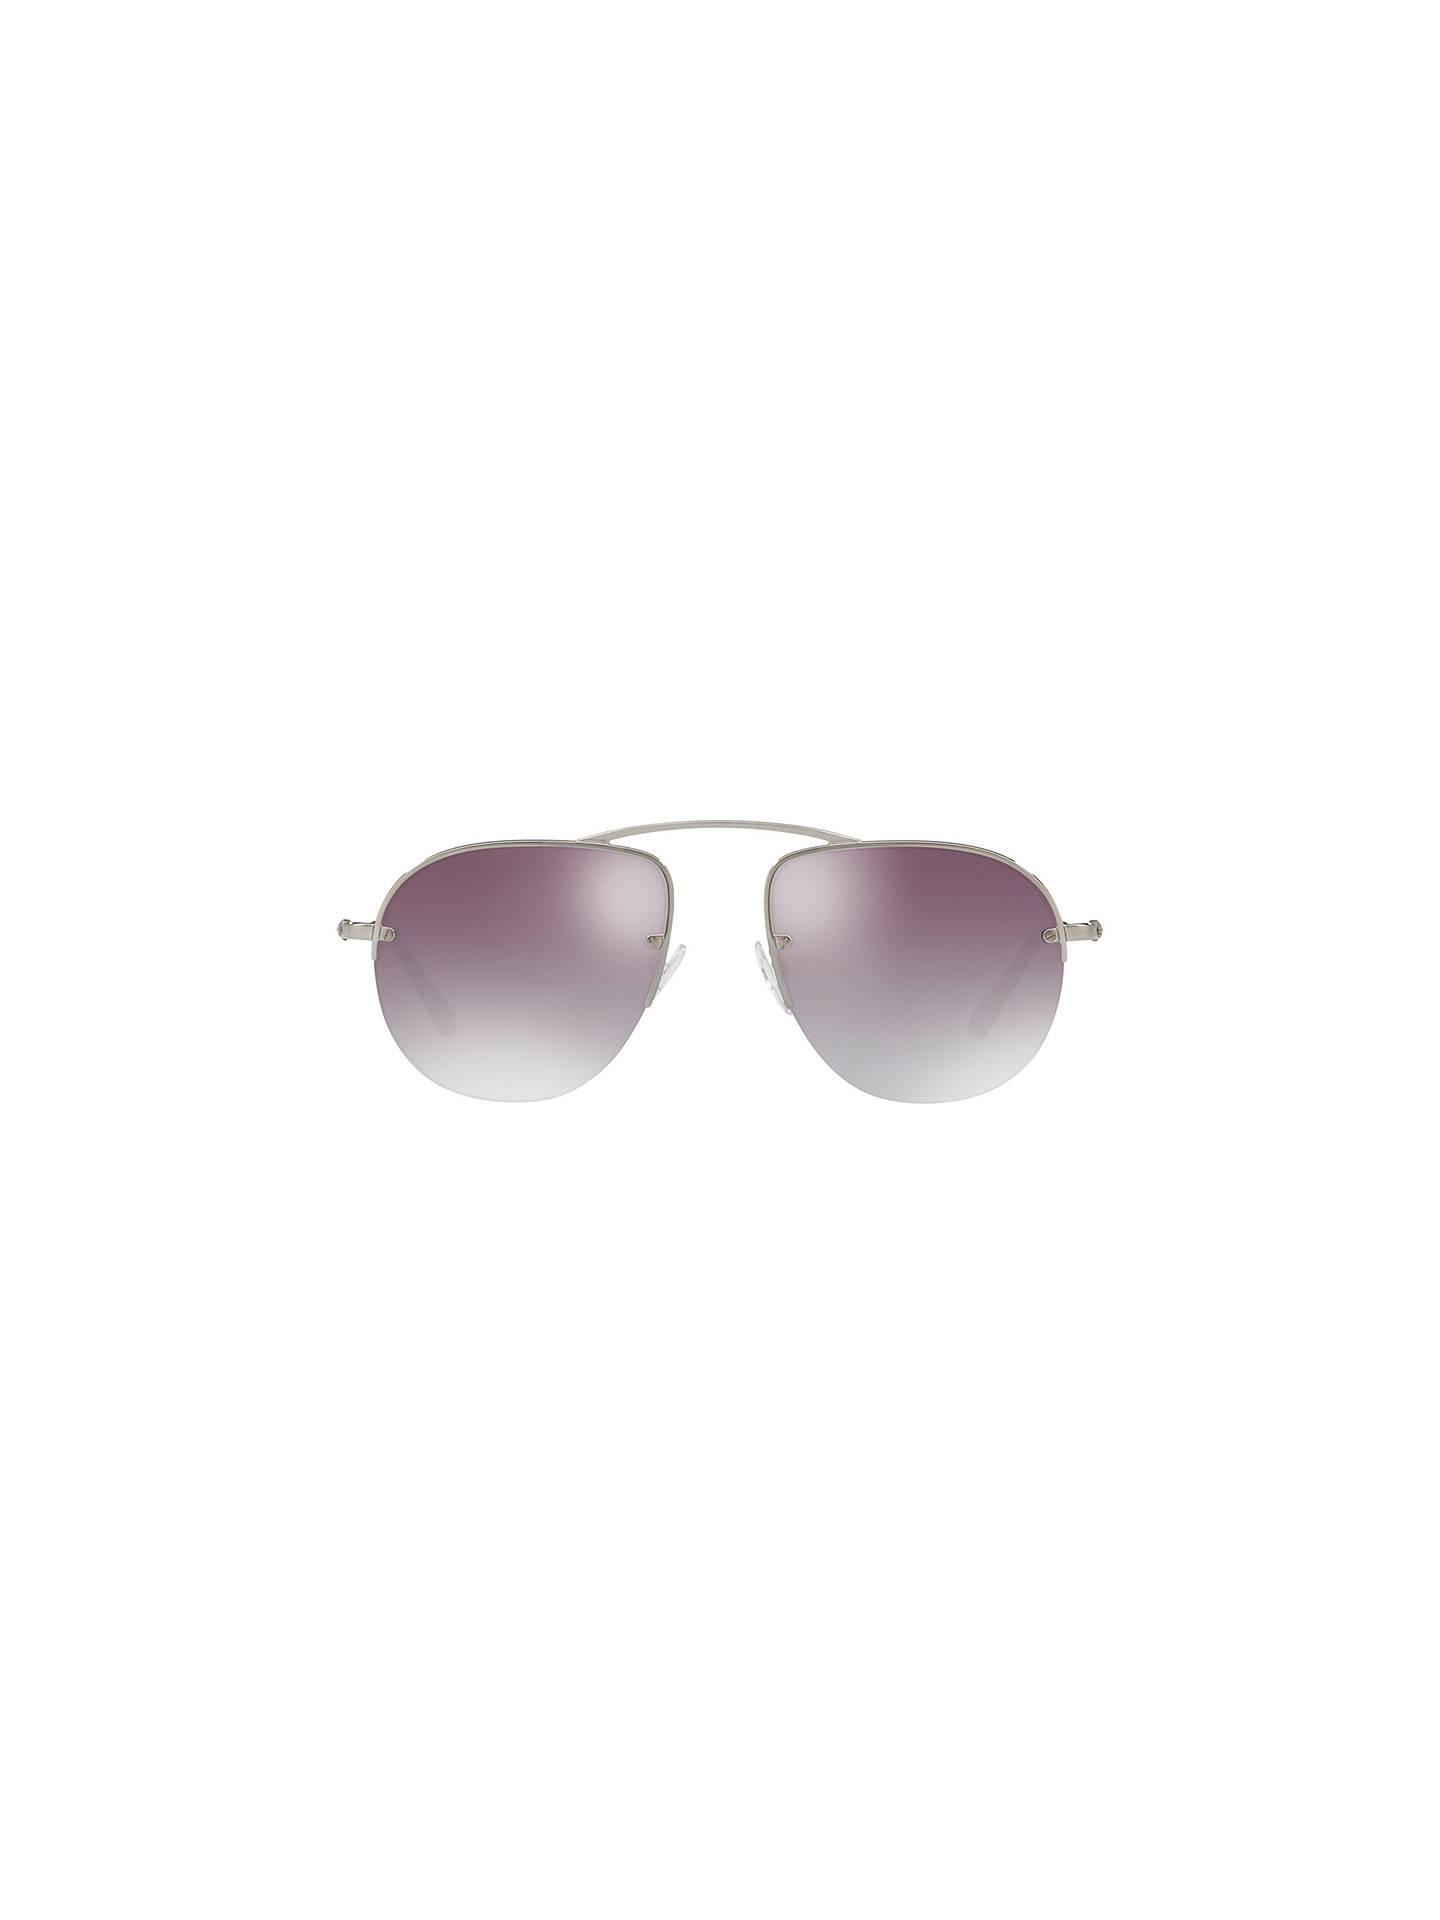 Buy Prada PR 58OS Aviator Sunglasses, Silver/Purple Gradient Online at johnlewis.com